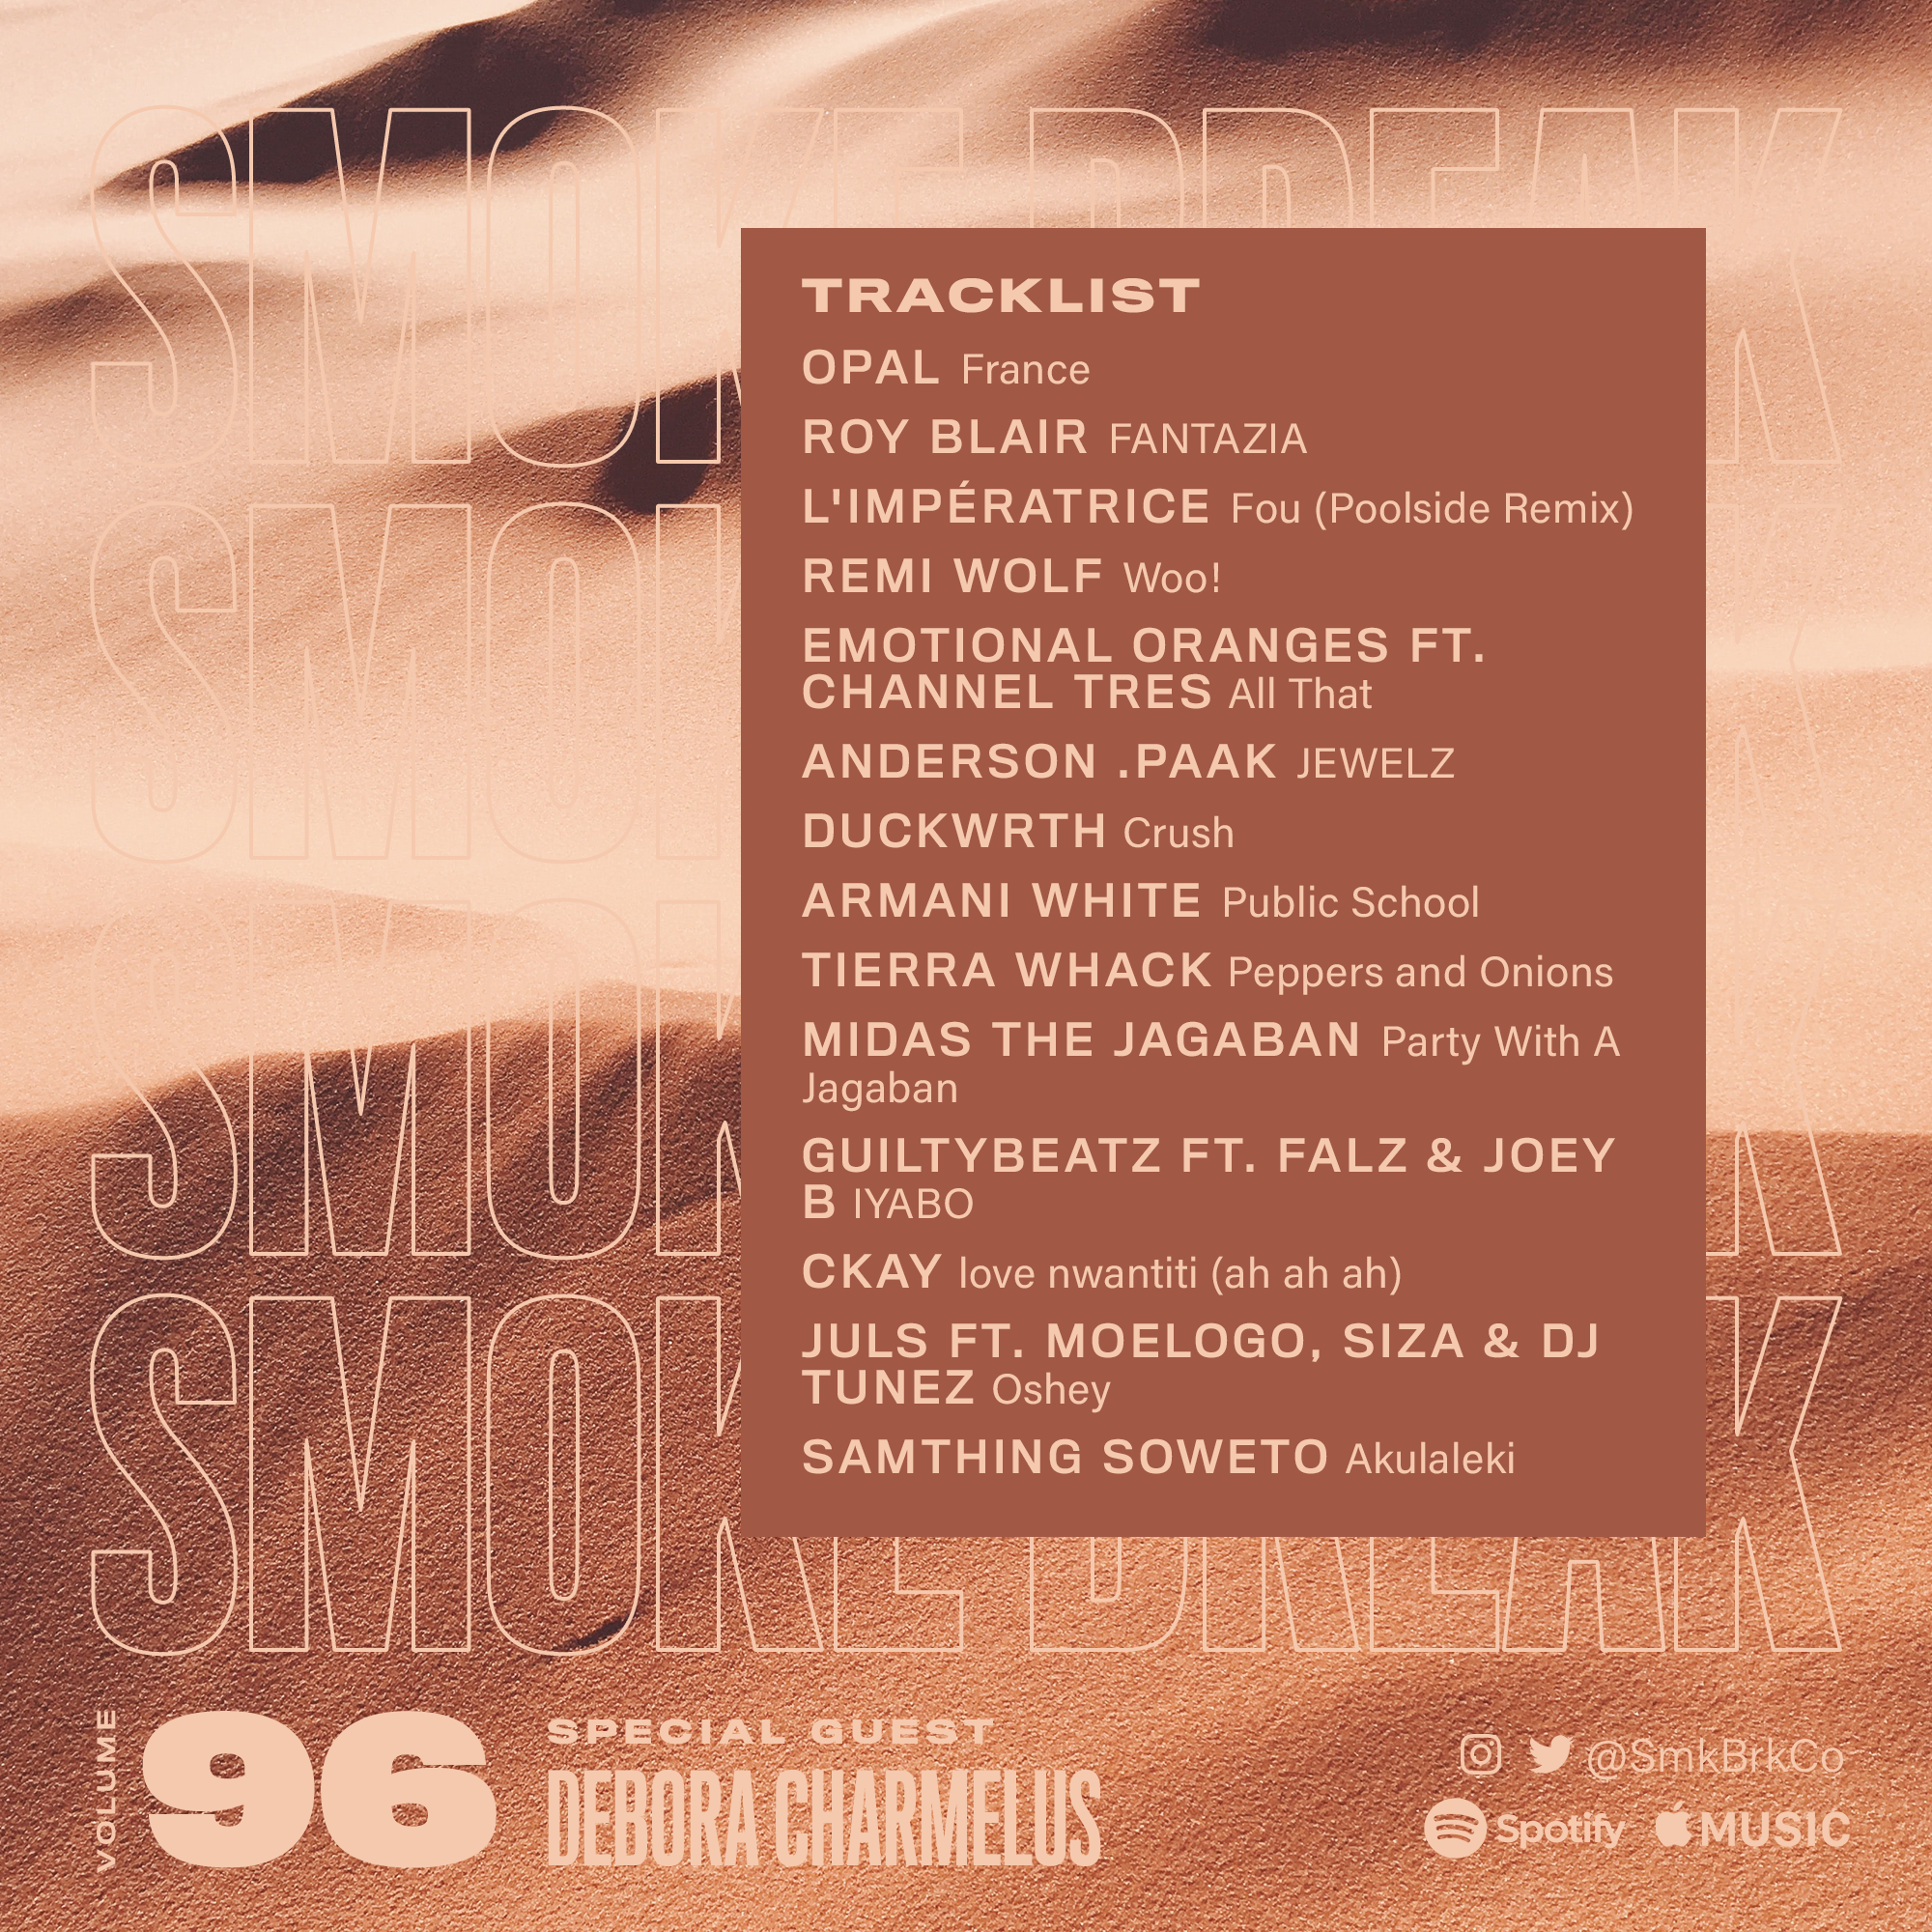 SMK BRK playlist vol 96 back cover